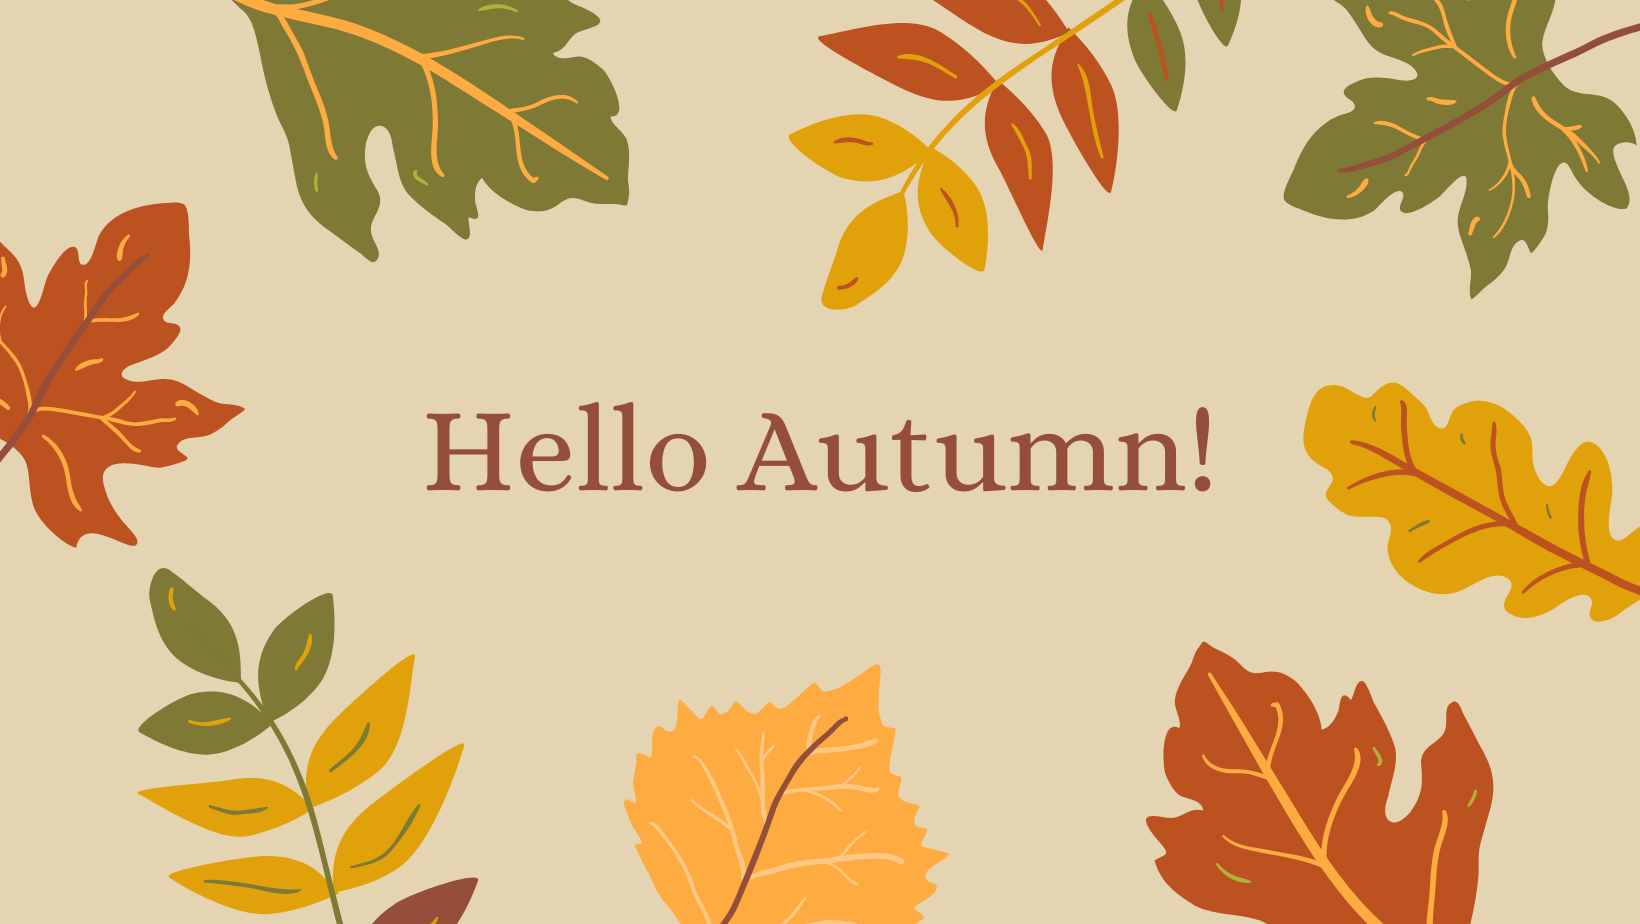 'Hello Autumn!' is surrounded by autumn leaves in reds, yellows and greens on a beige background